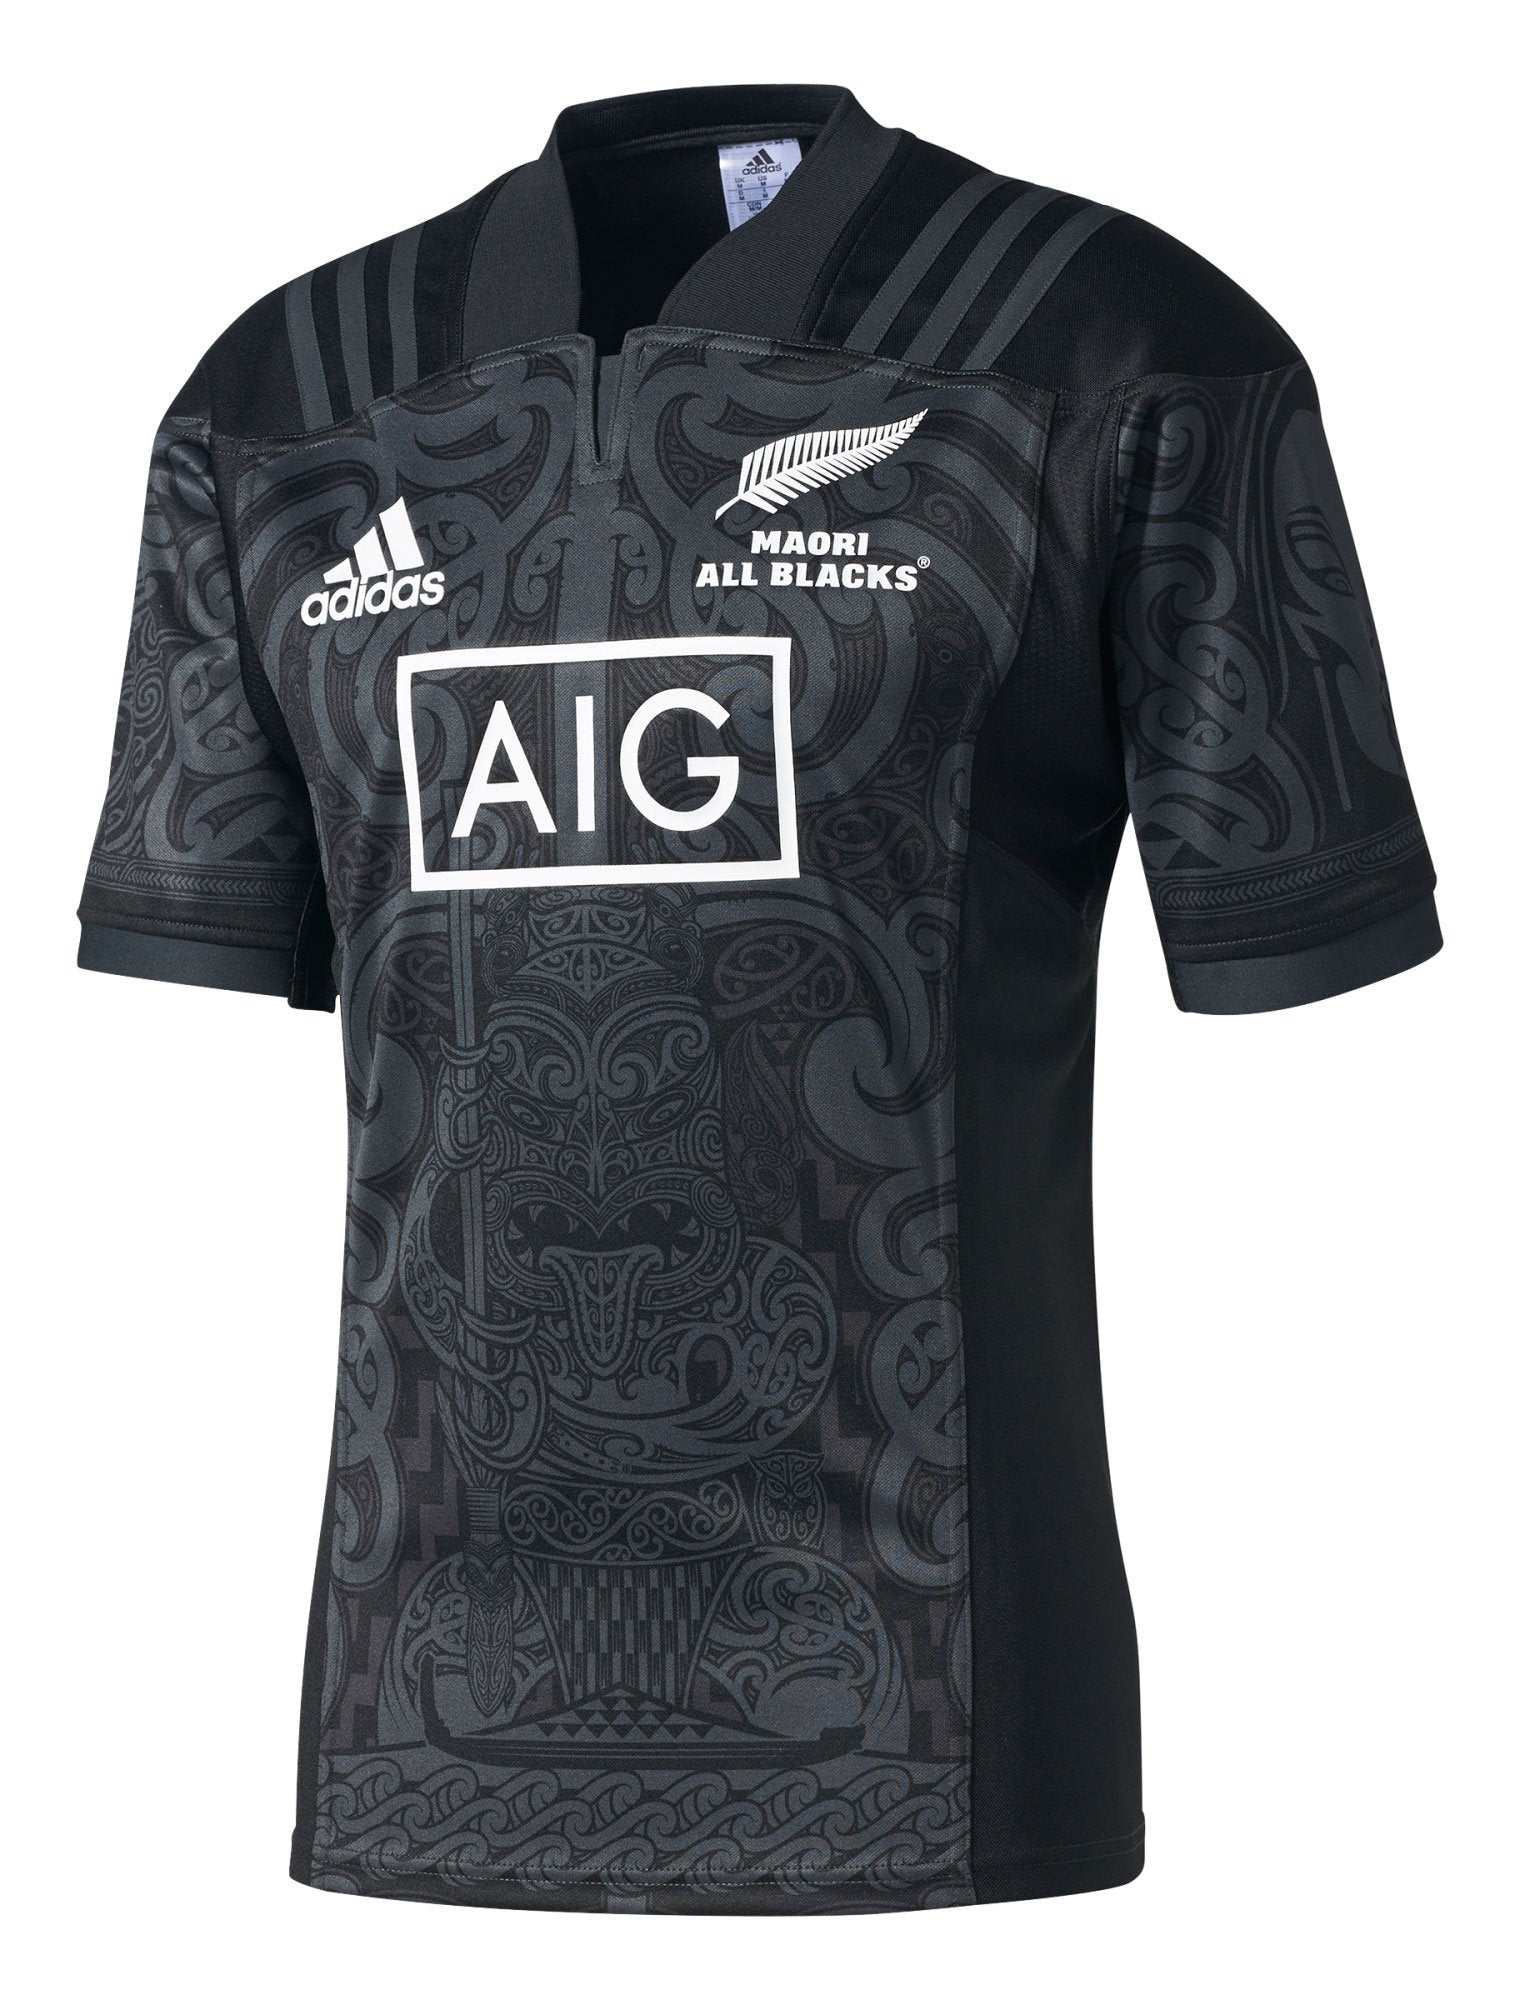 89341791273 adidas-Mens Maori All Blacks Jersey - Limited Edition Lions Tour 2017-shop  online ...